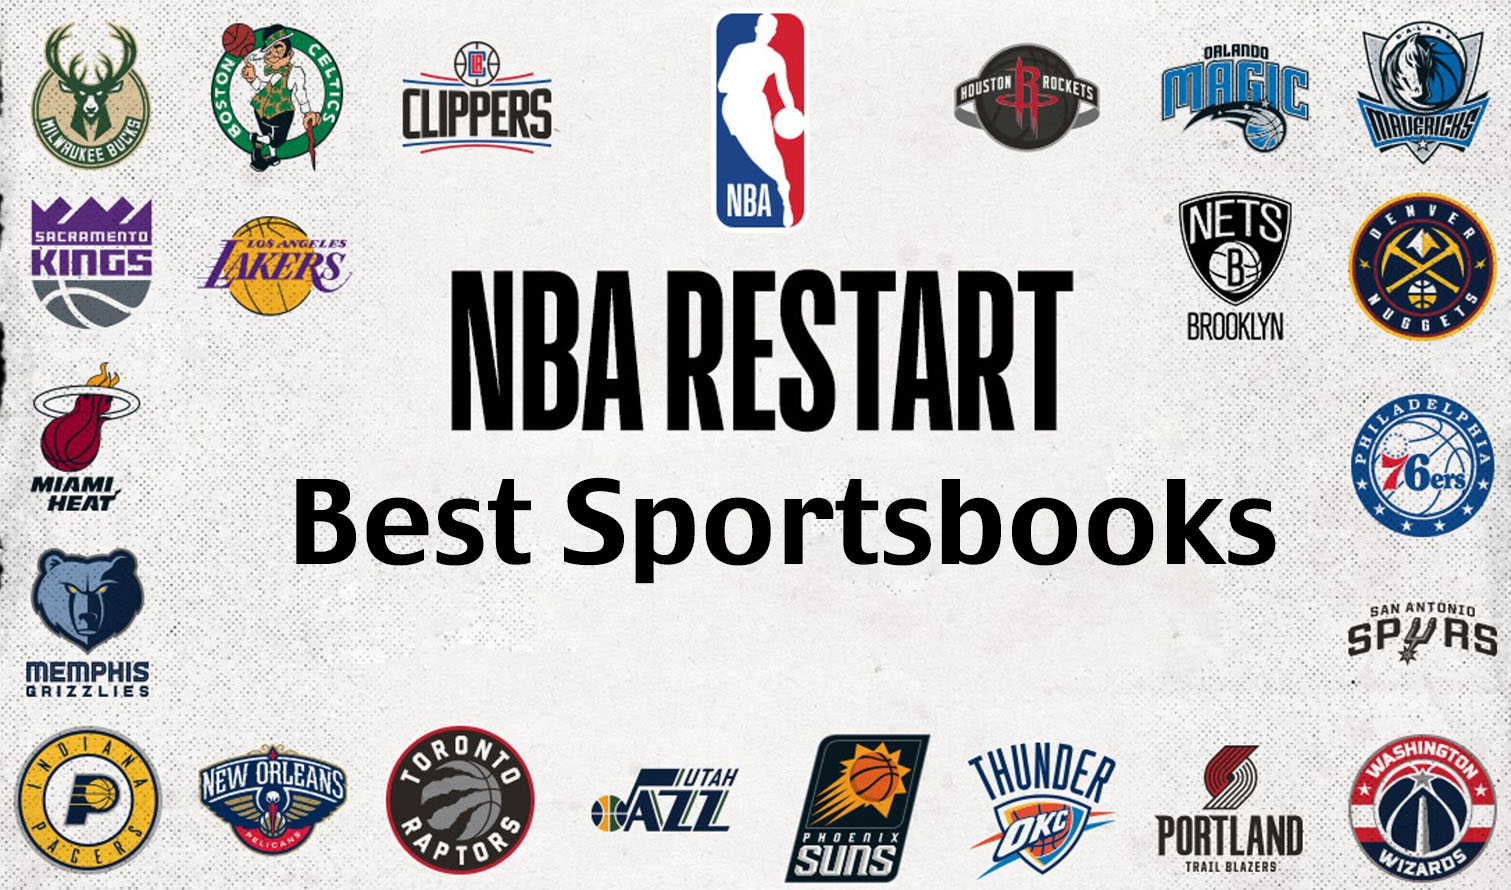 Best Sportsbooks to Use to Bet the NBA Restart